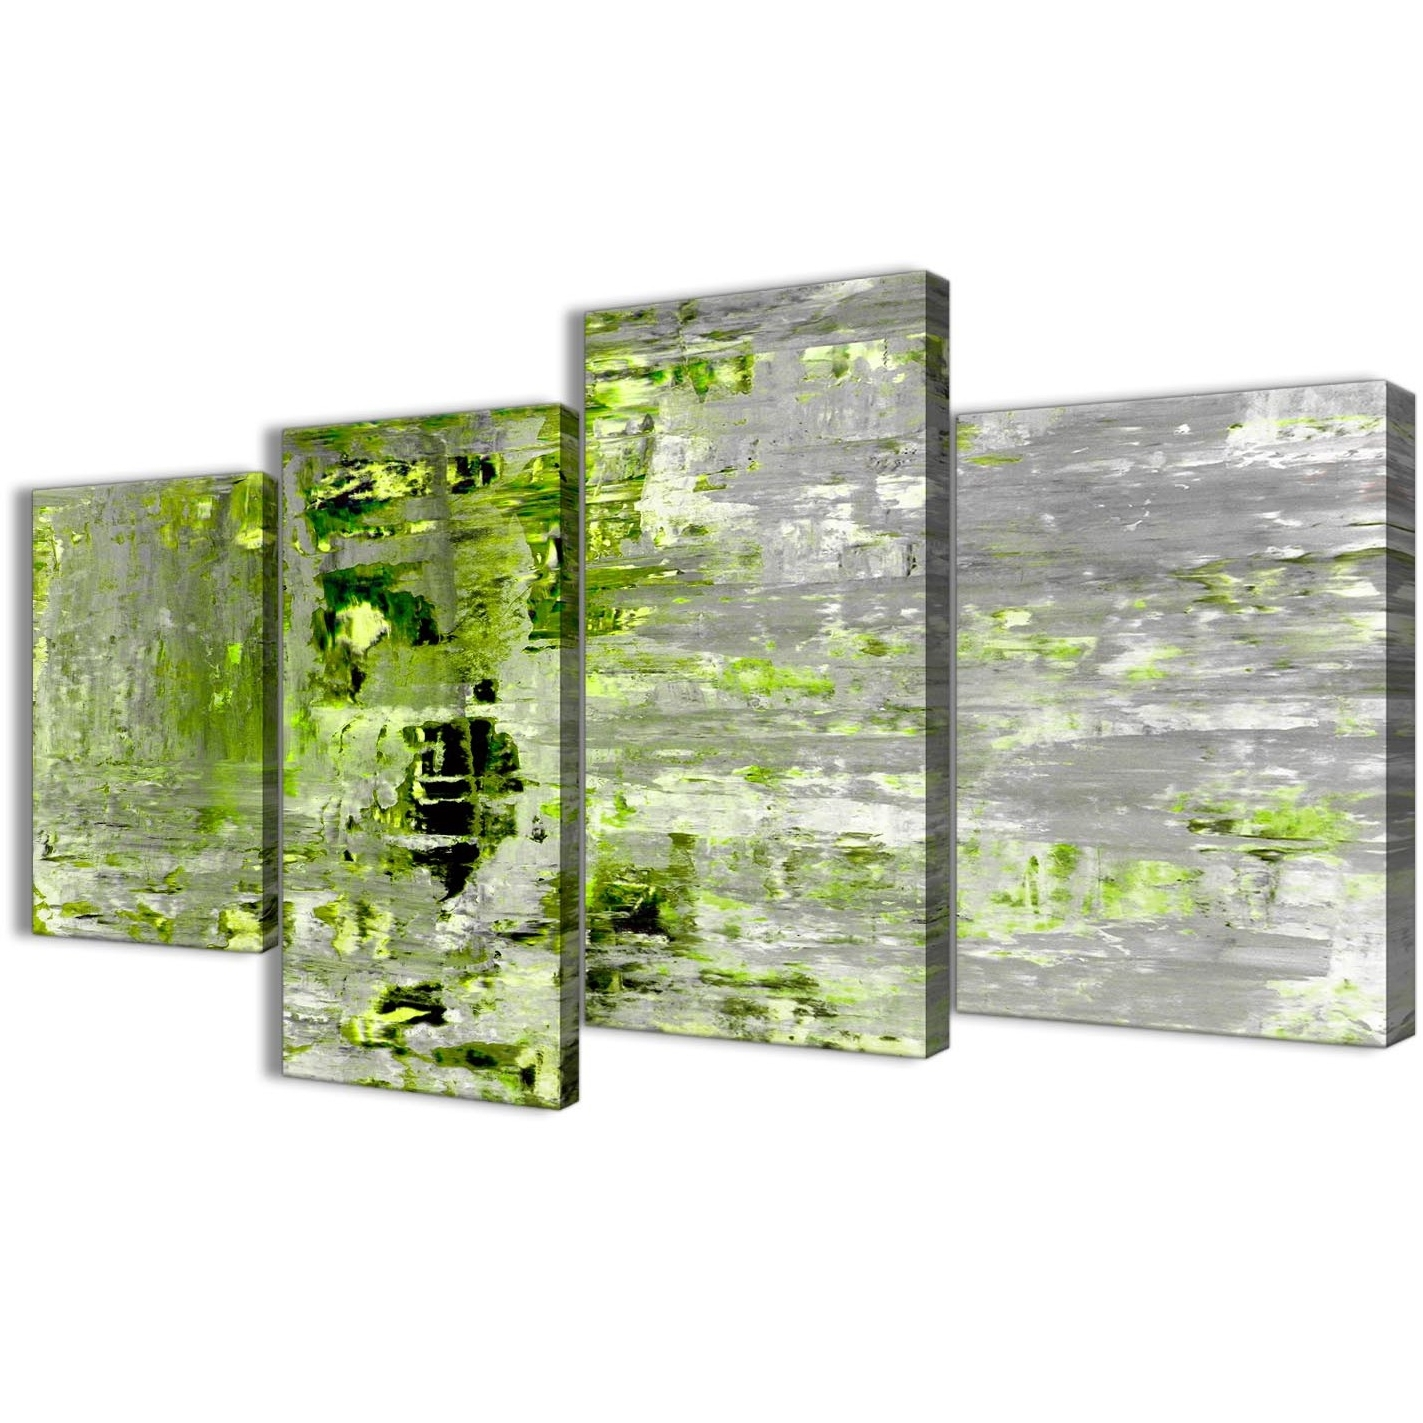 2017 Lime Green Canvas Wall Art Intended For Large Lime Green Grey Abstract Painting Wall Art Print Canvas (View 1 of 15)